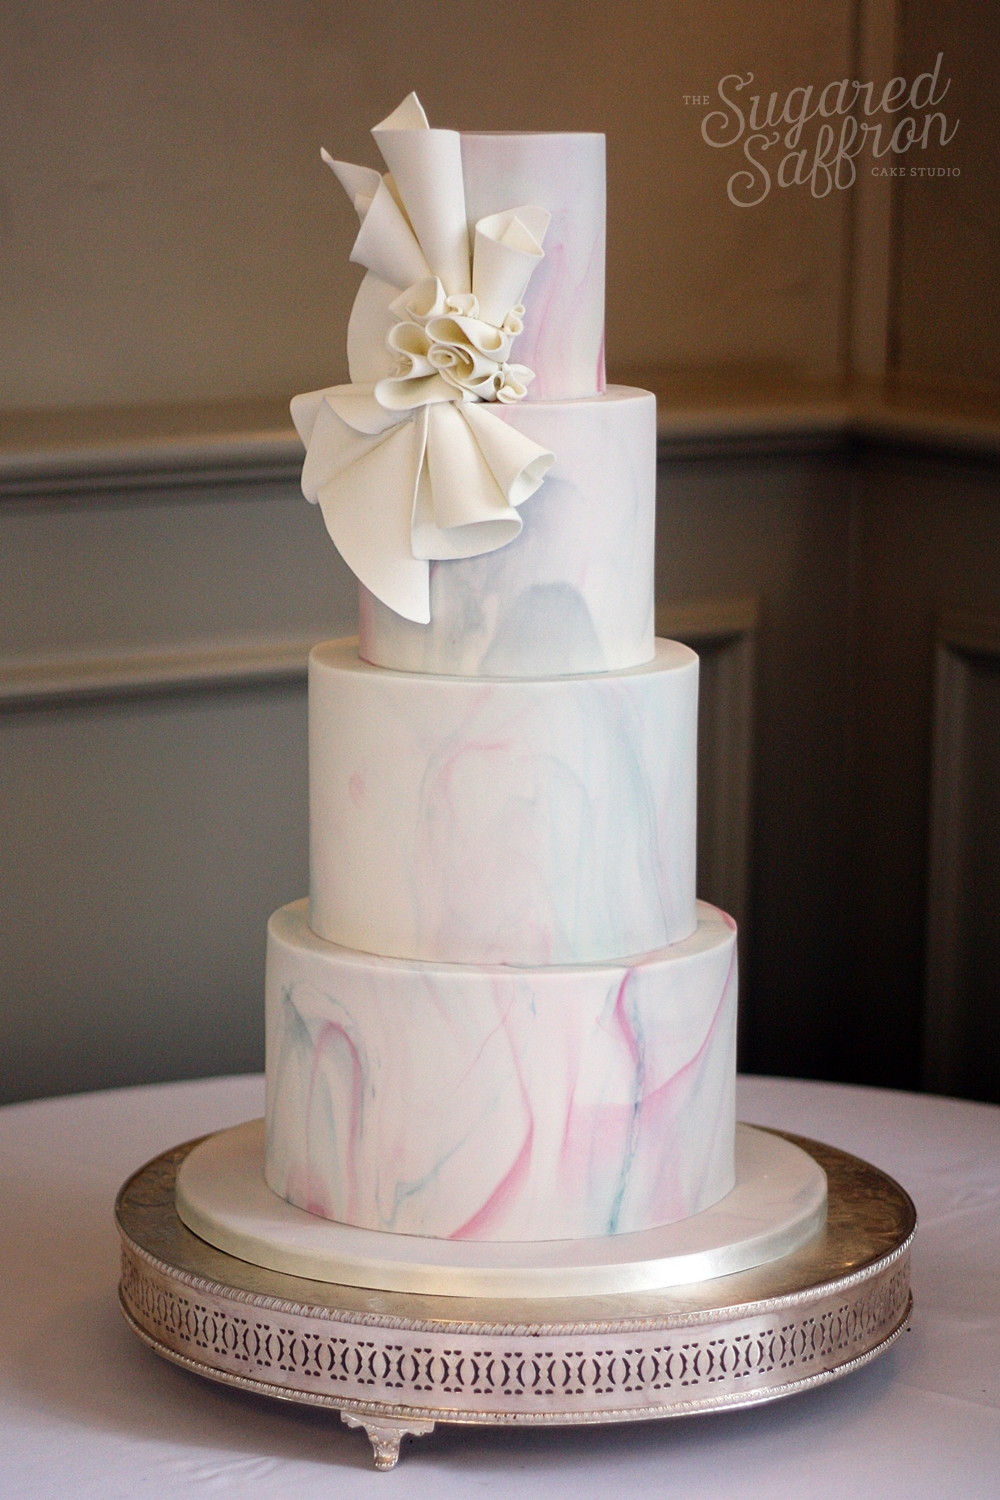 London wedding cake with pastel marble